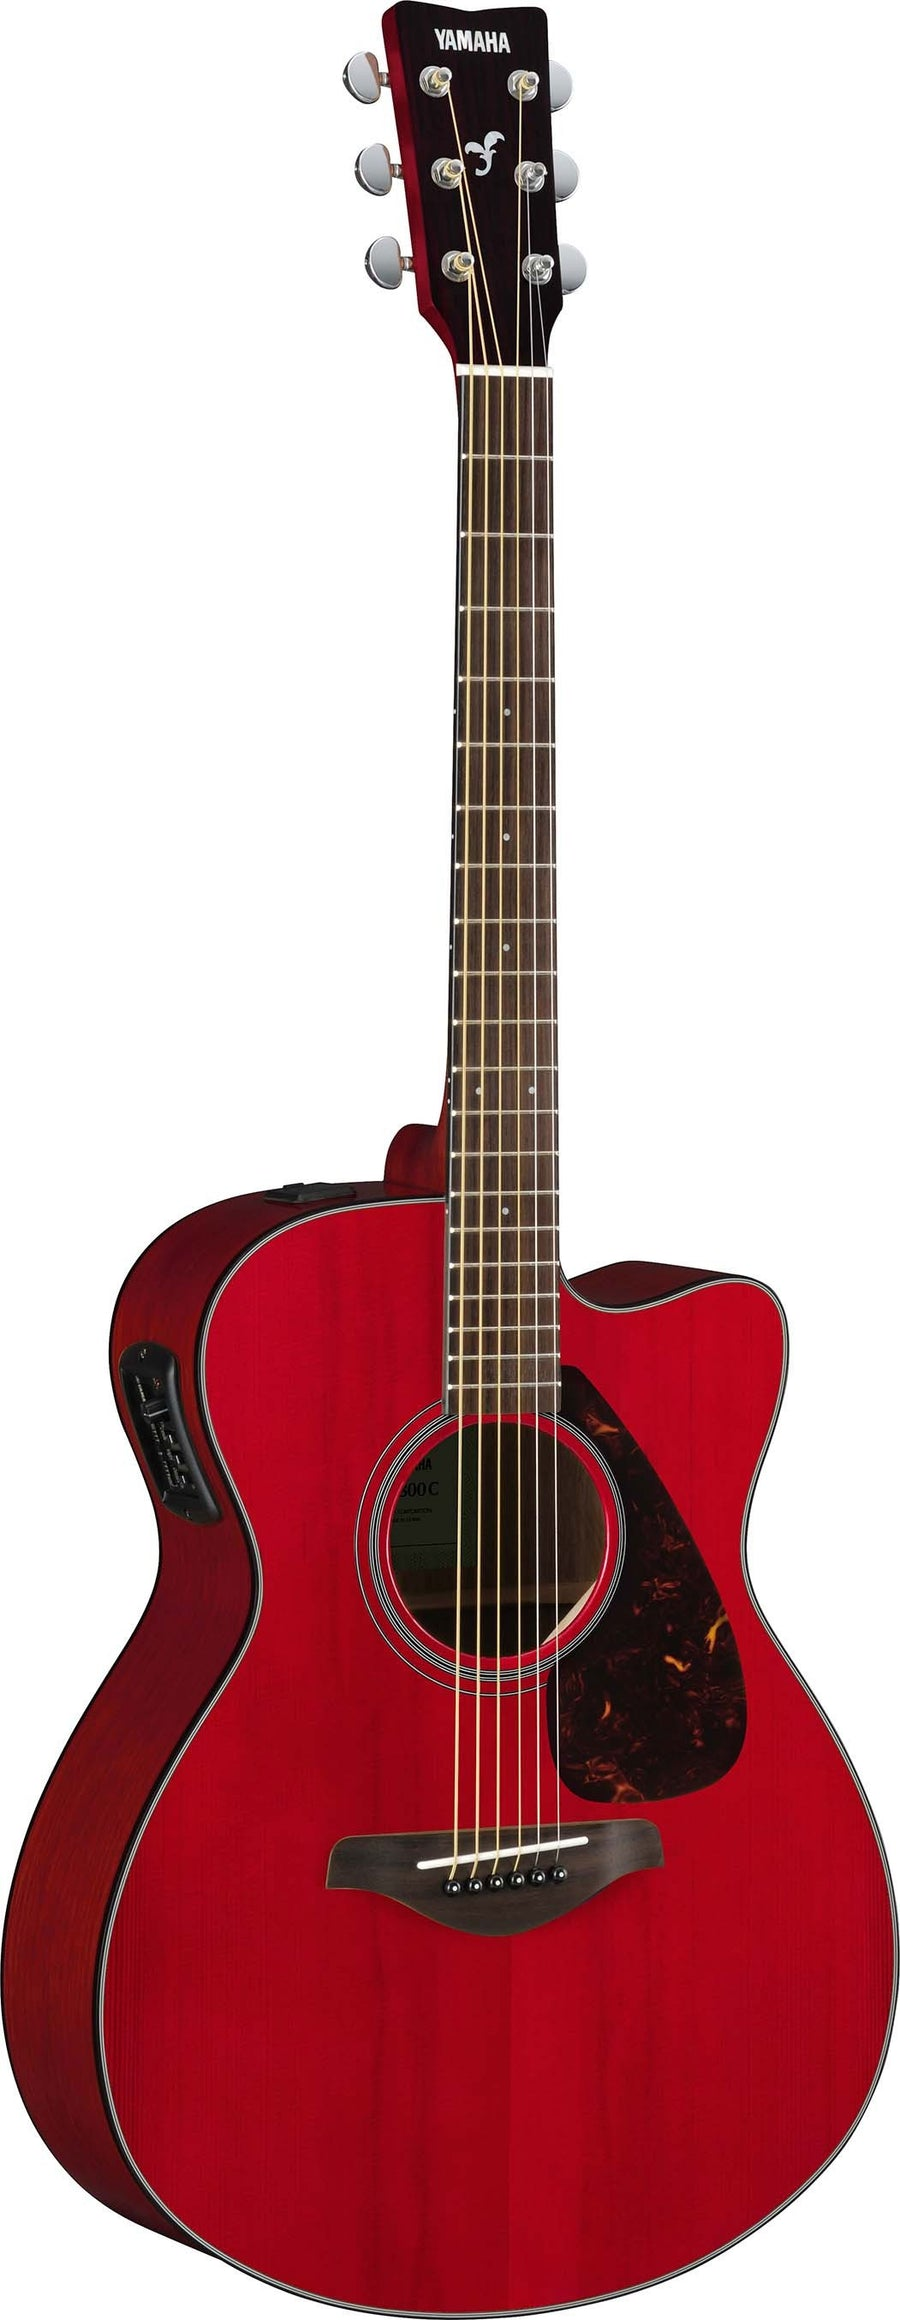 Yamaha FSX800C Ruby Red Acoustic Electric Guitar